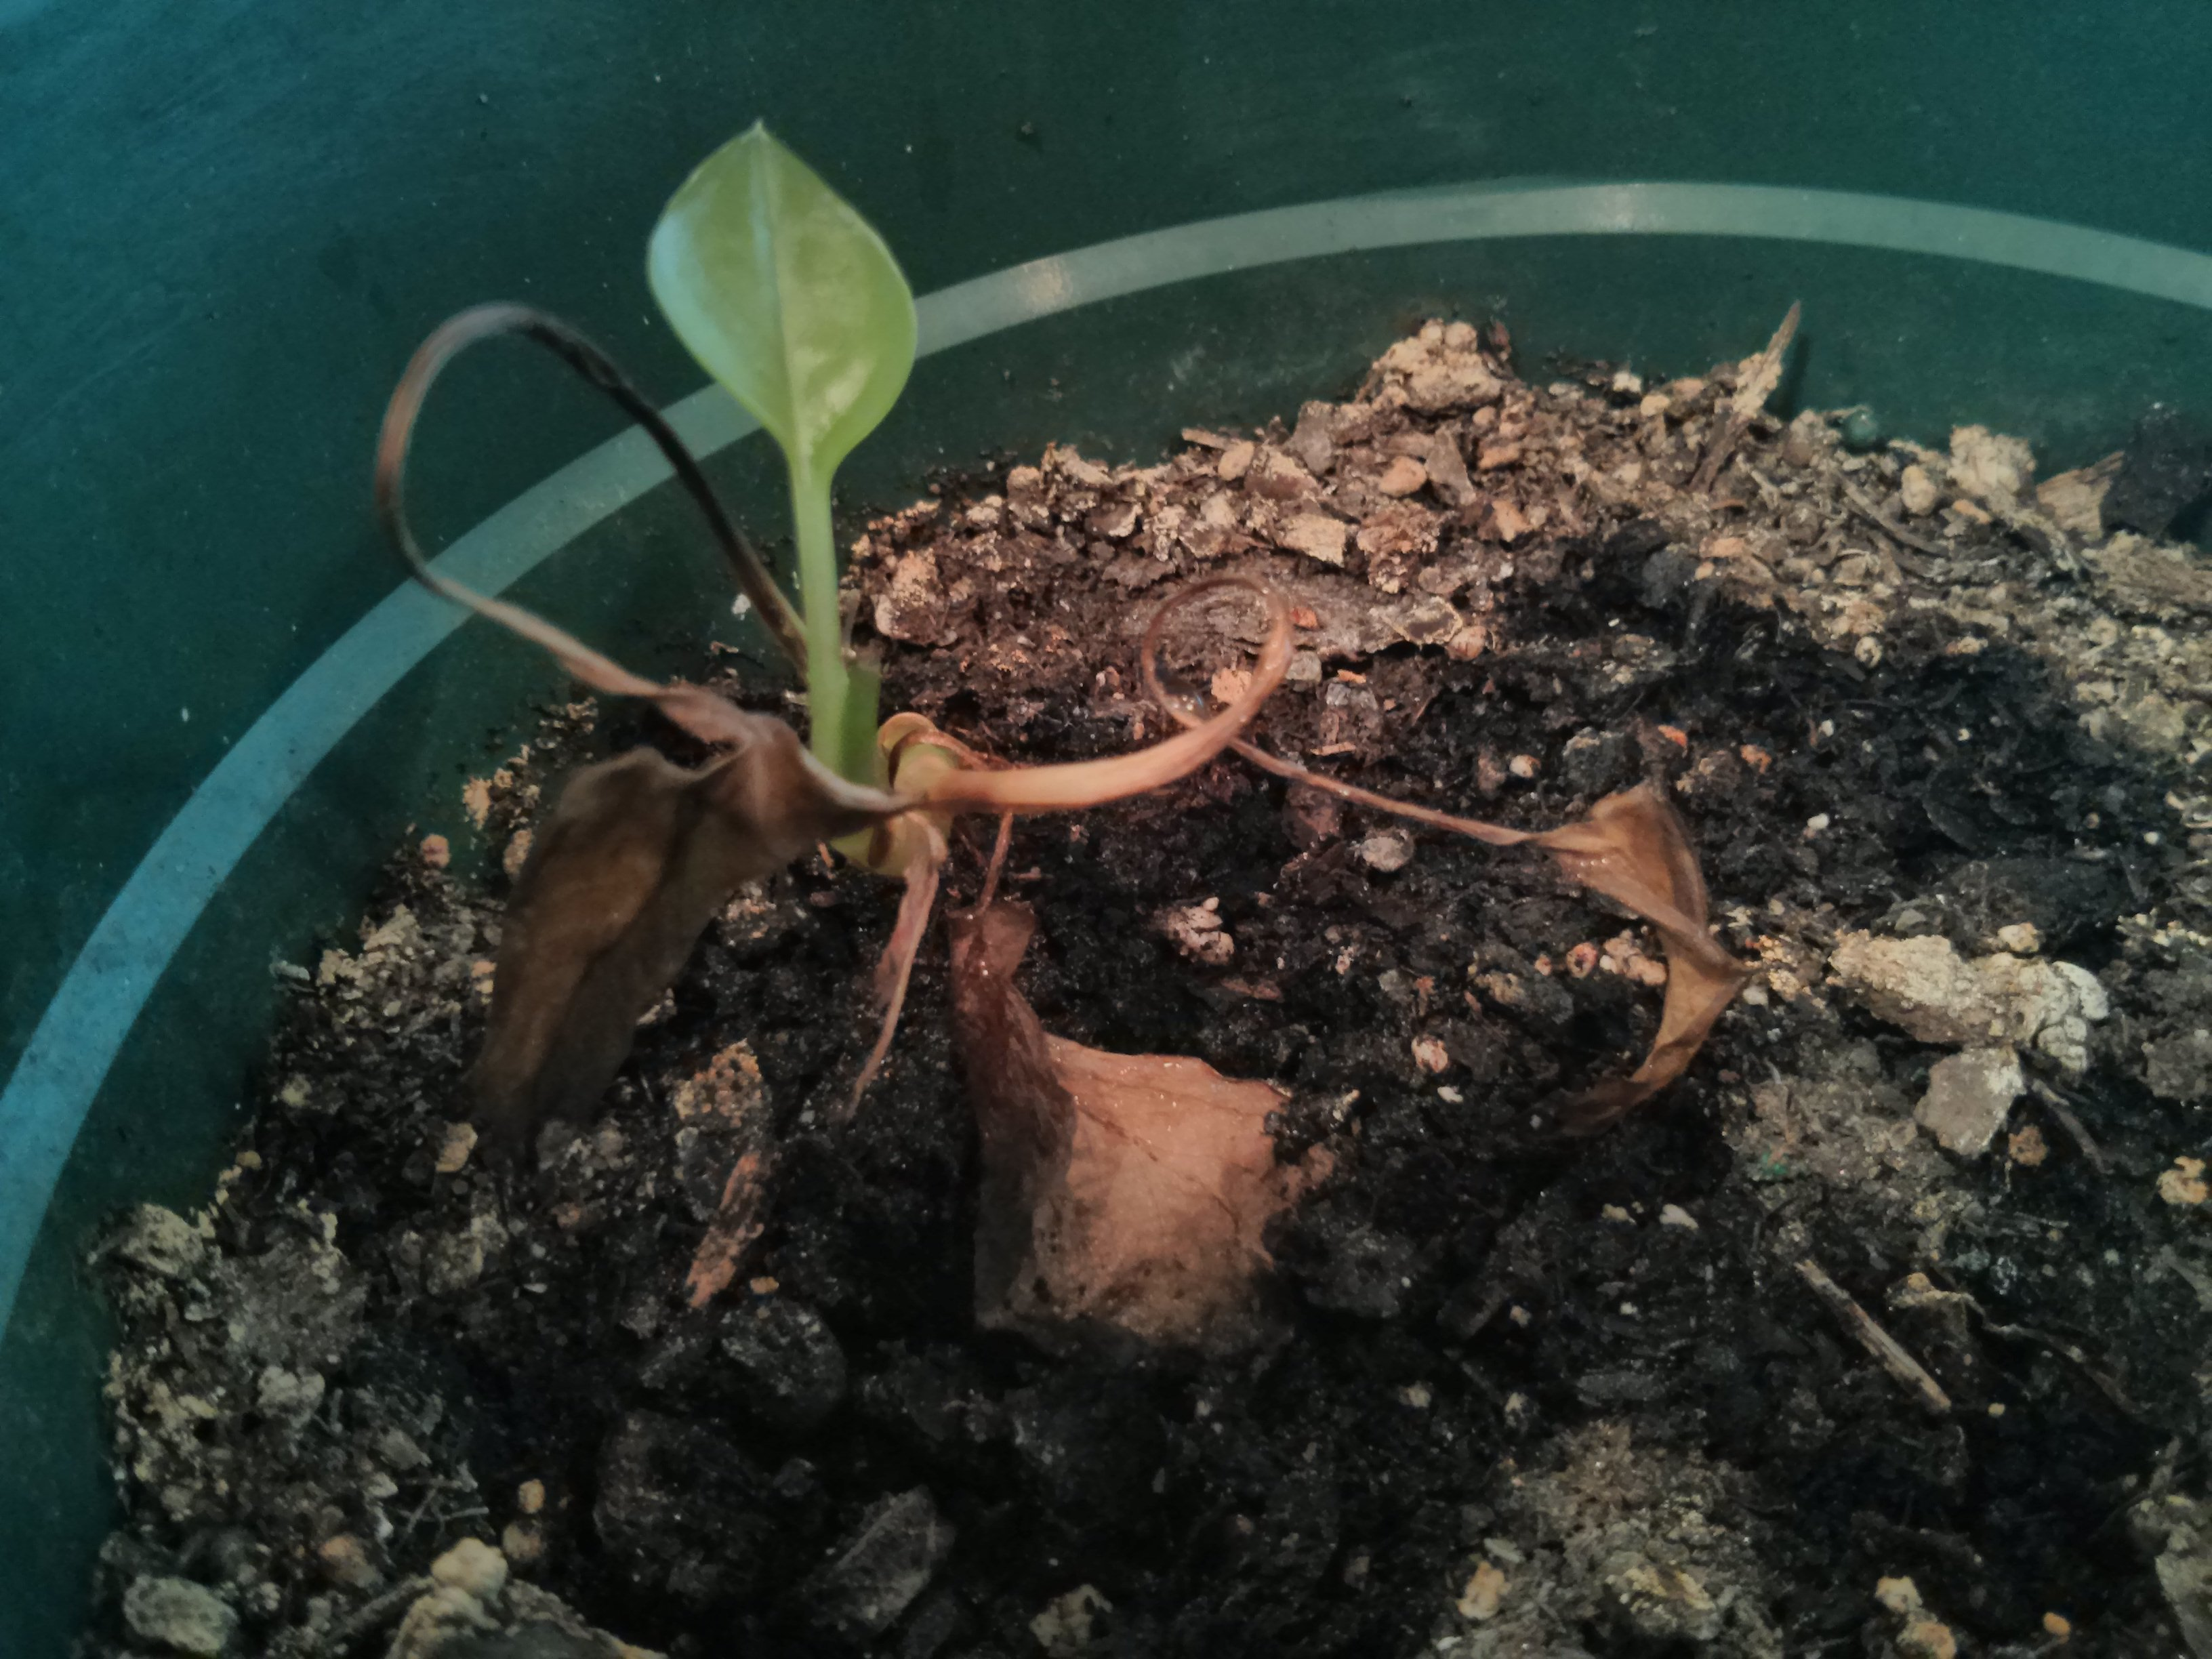 A tiny green sprout with a single leaf pokes up out of an otherwise dead houseplant.